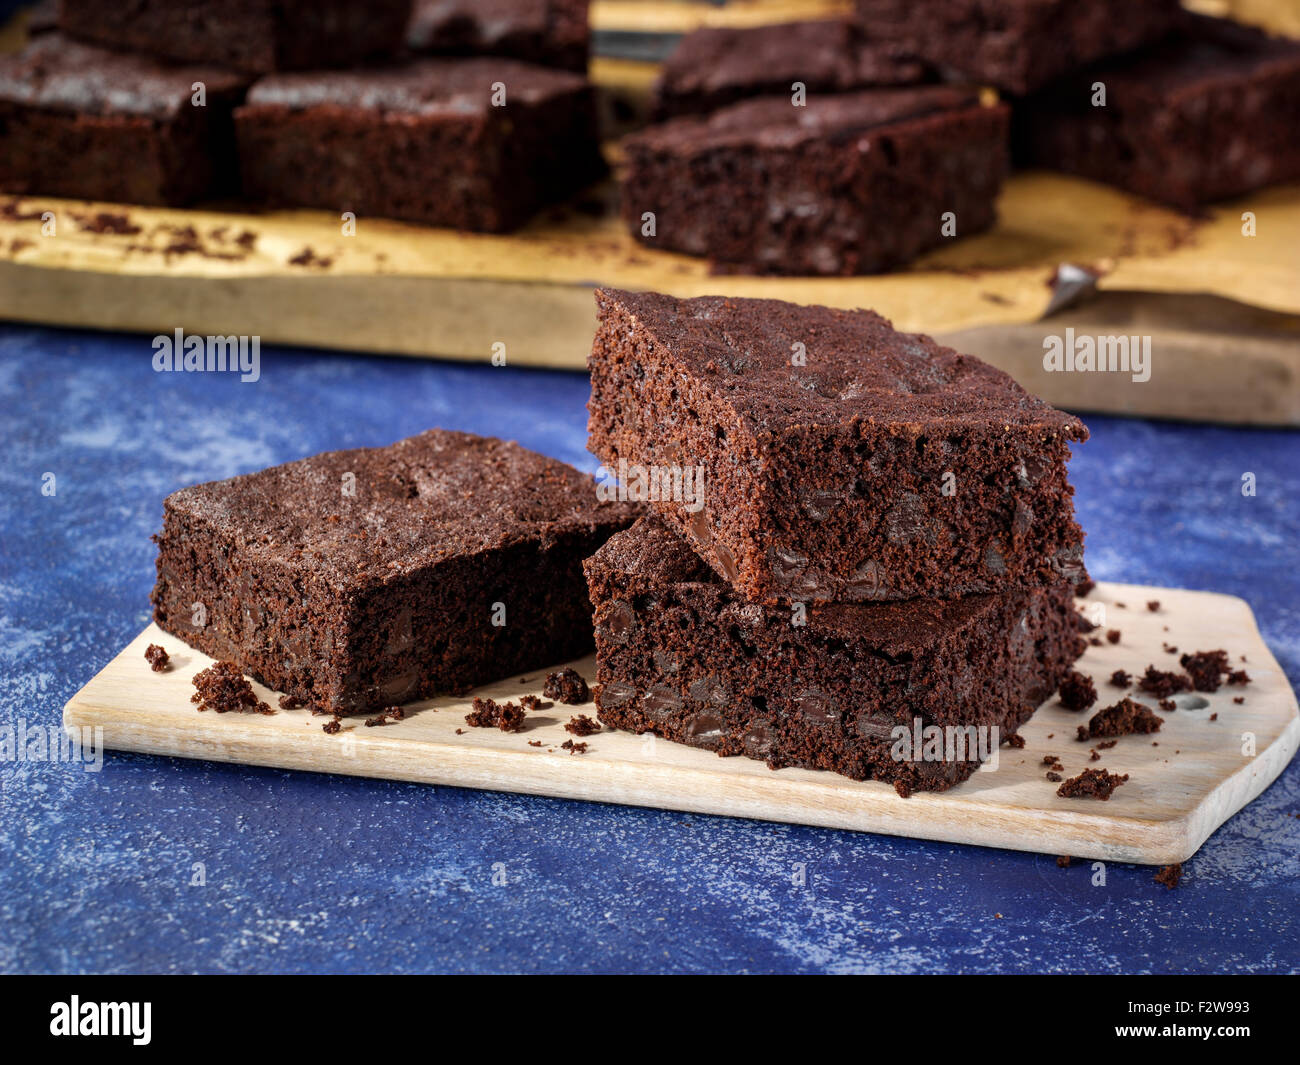 Hot chocolate brownies - Stock Image